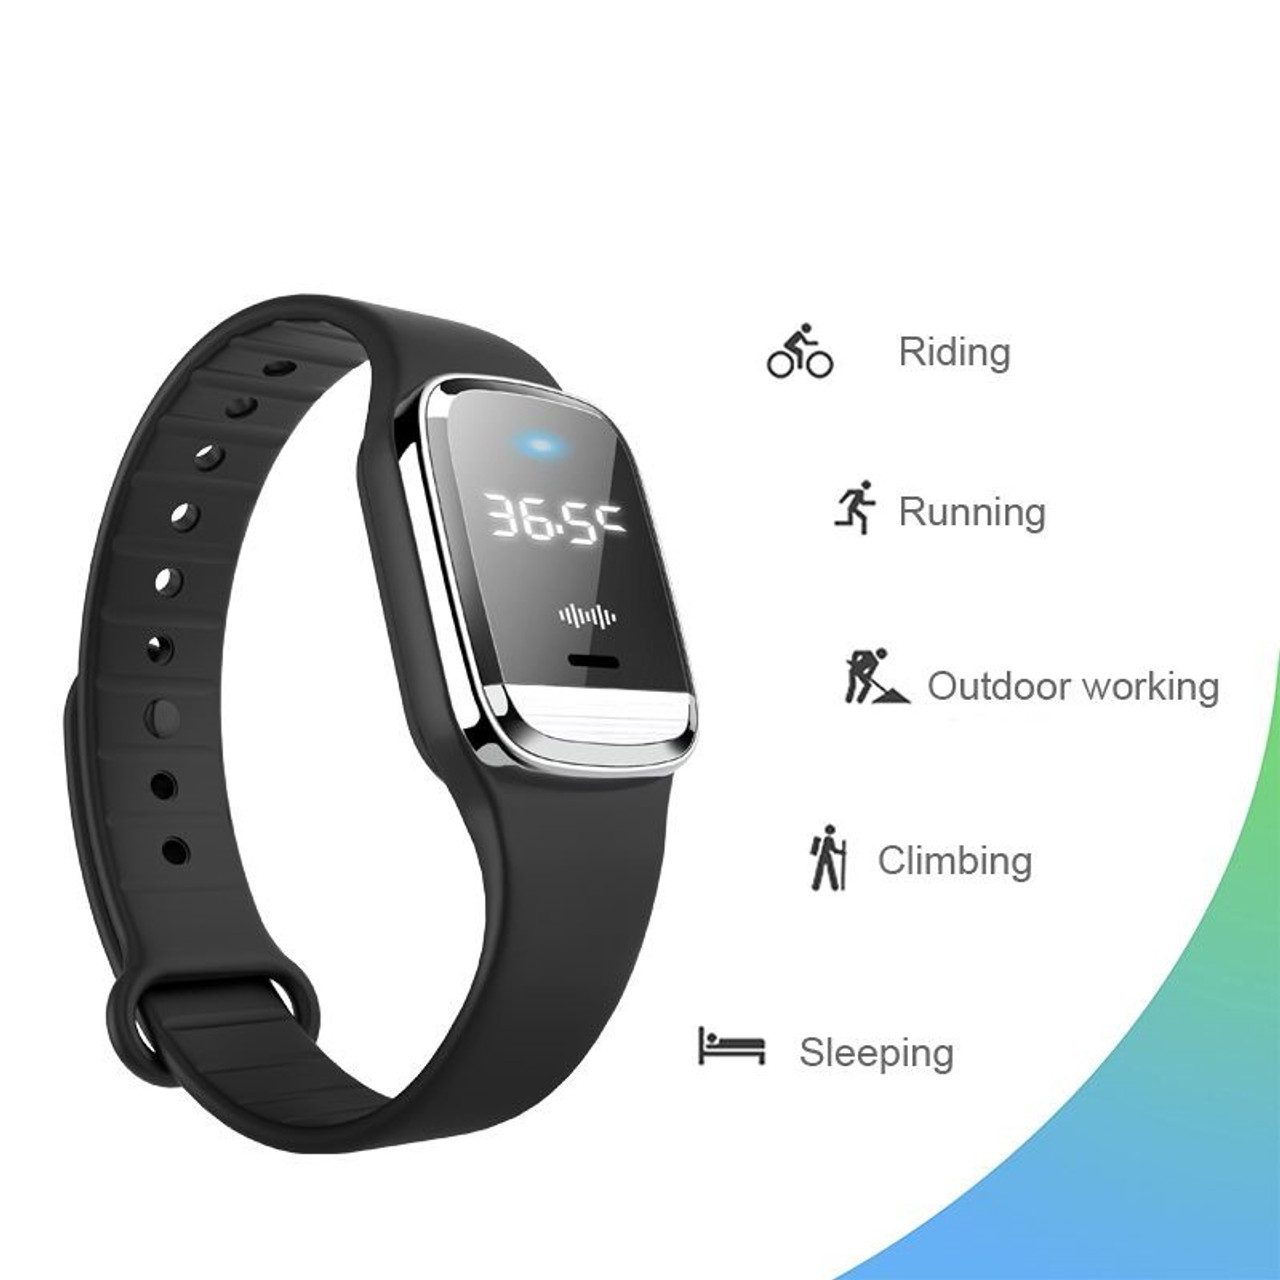 IntelRepel - The Ultrasonic Mosquito Repellent Watch With Thermometer V3